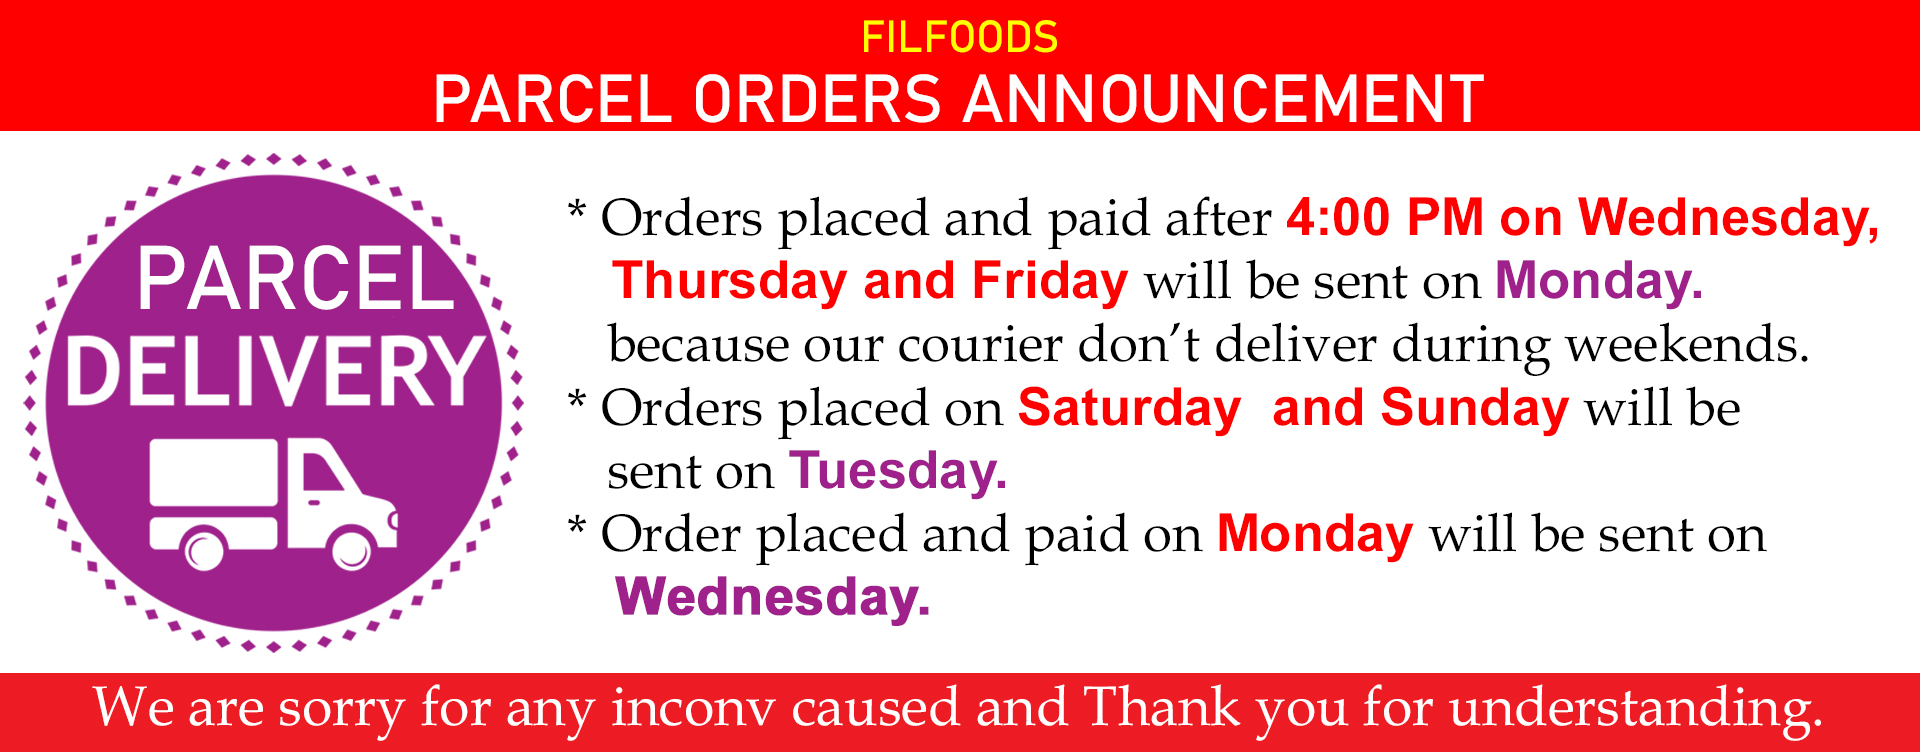 parcel announcement_1